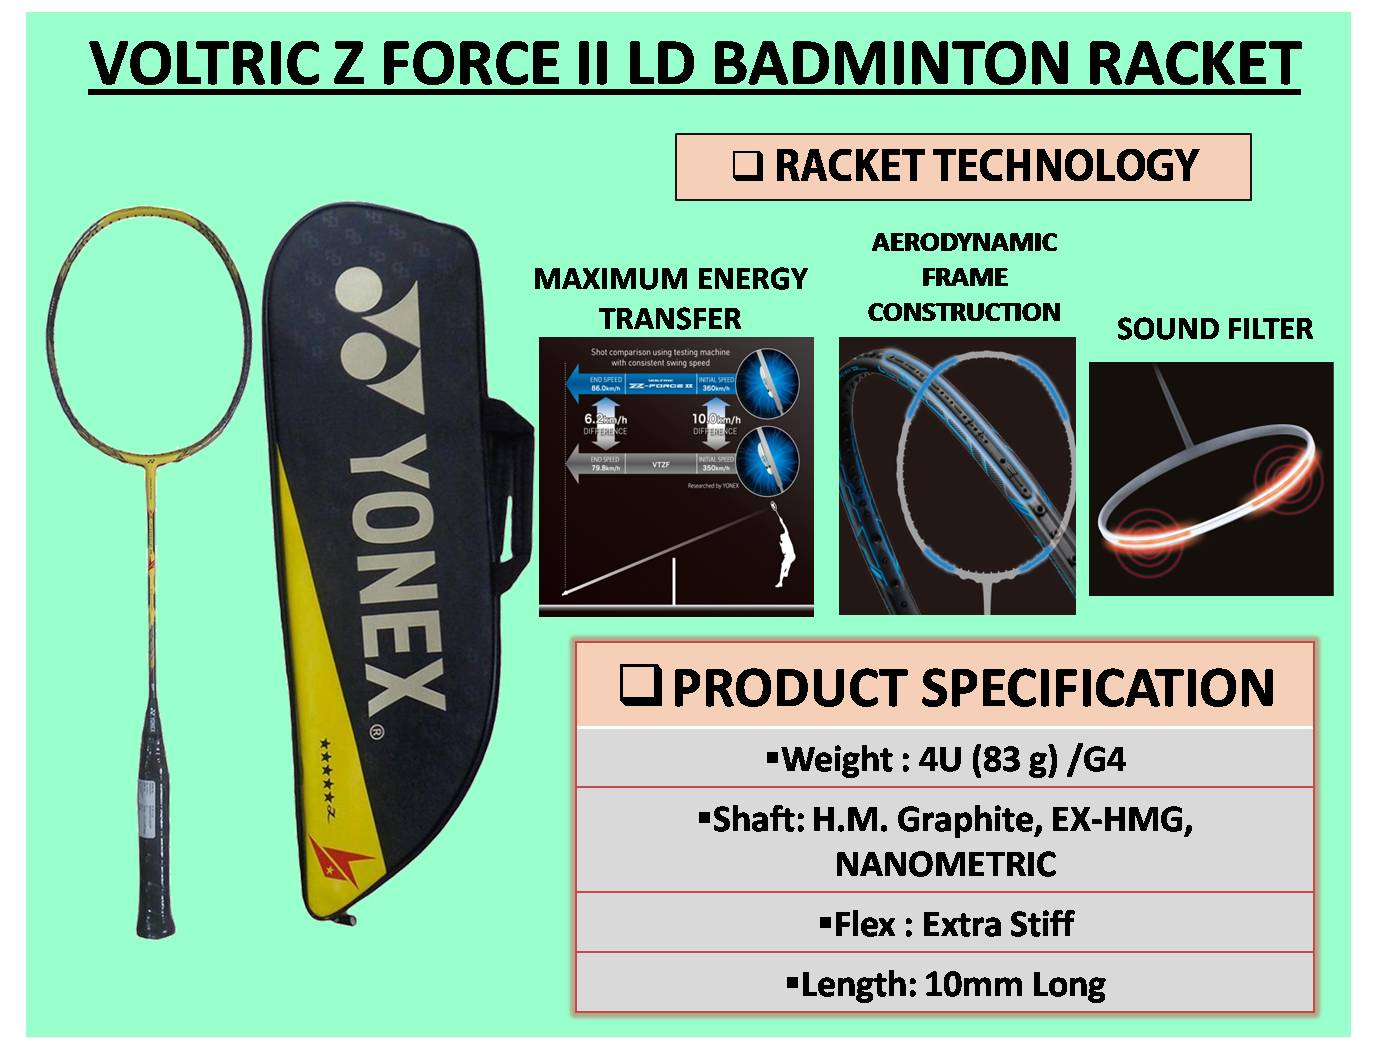 VOLTRIC Z FORCE II LD BADMINTON RACKET